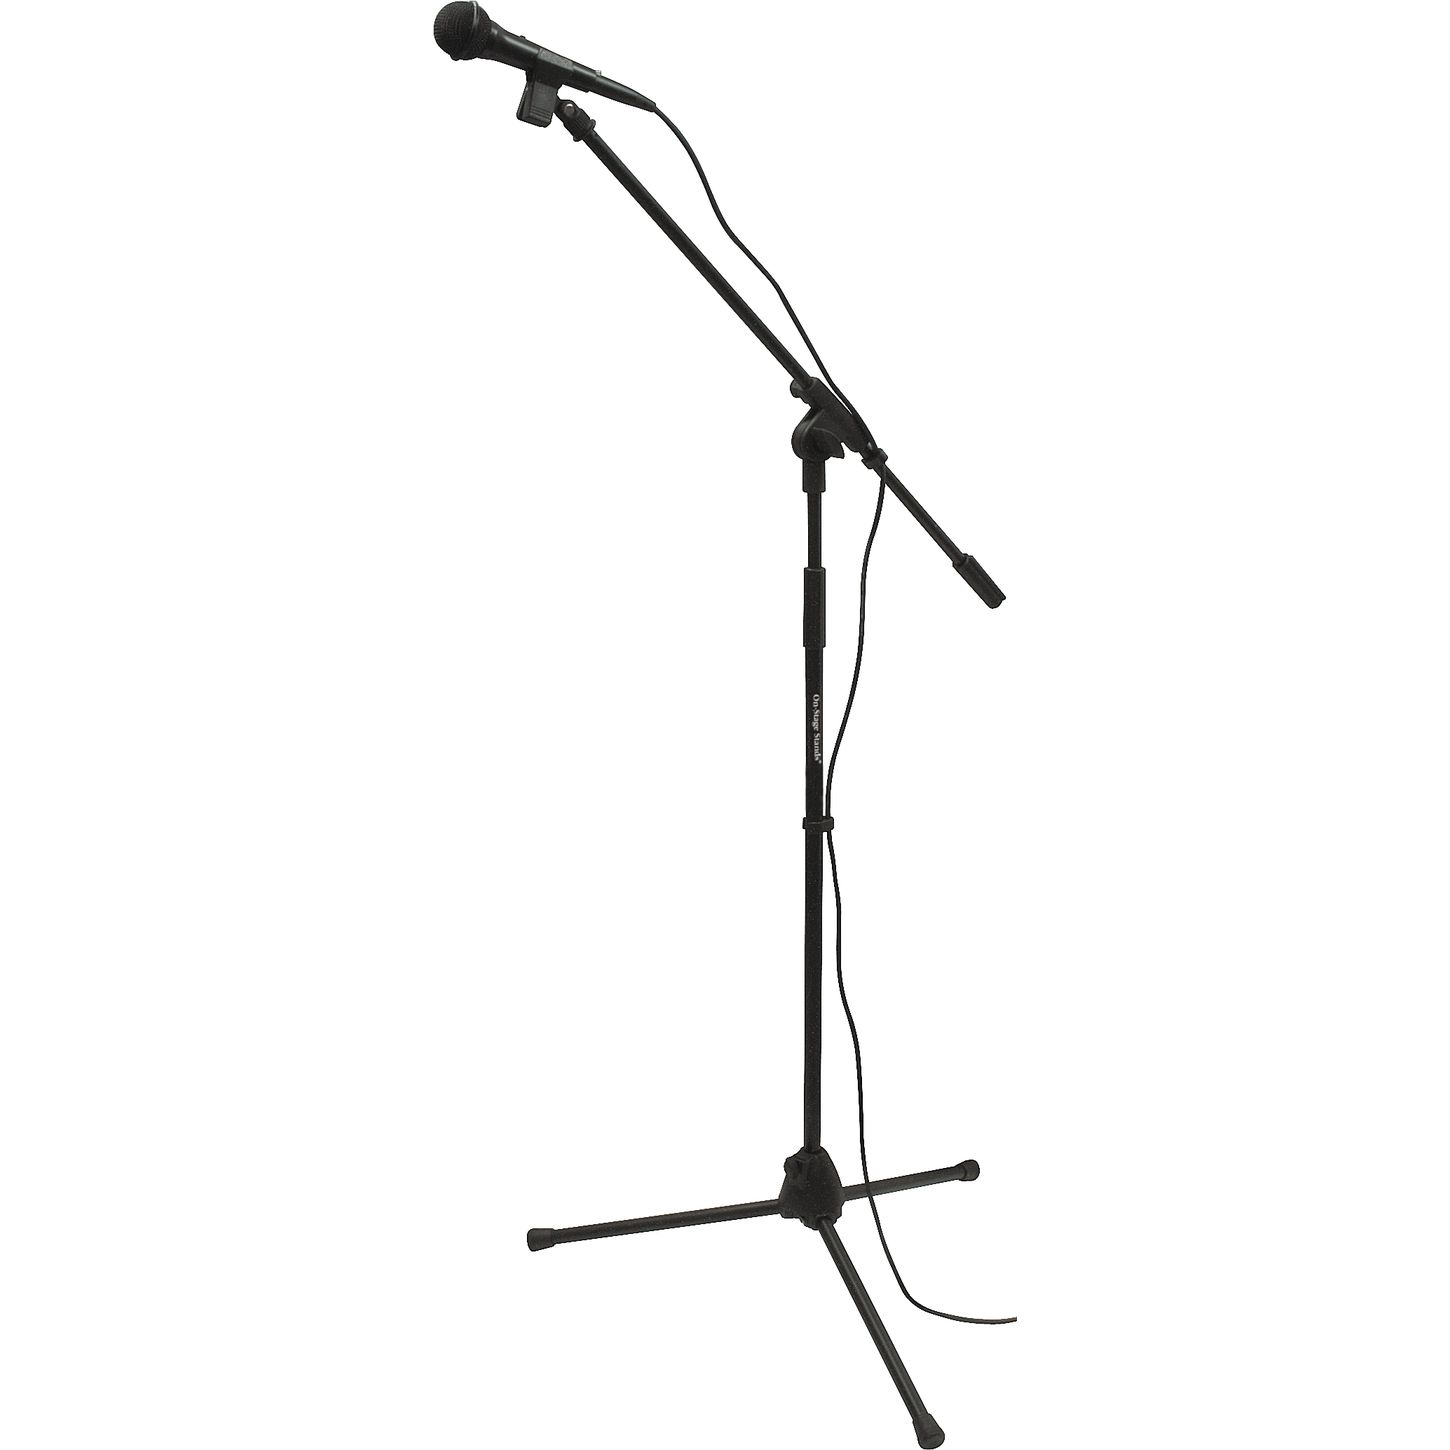 Microphone With Stand Drawing Download